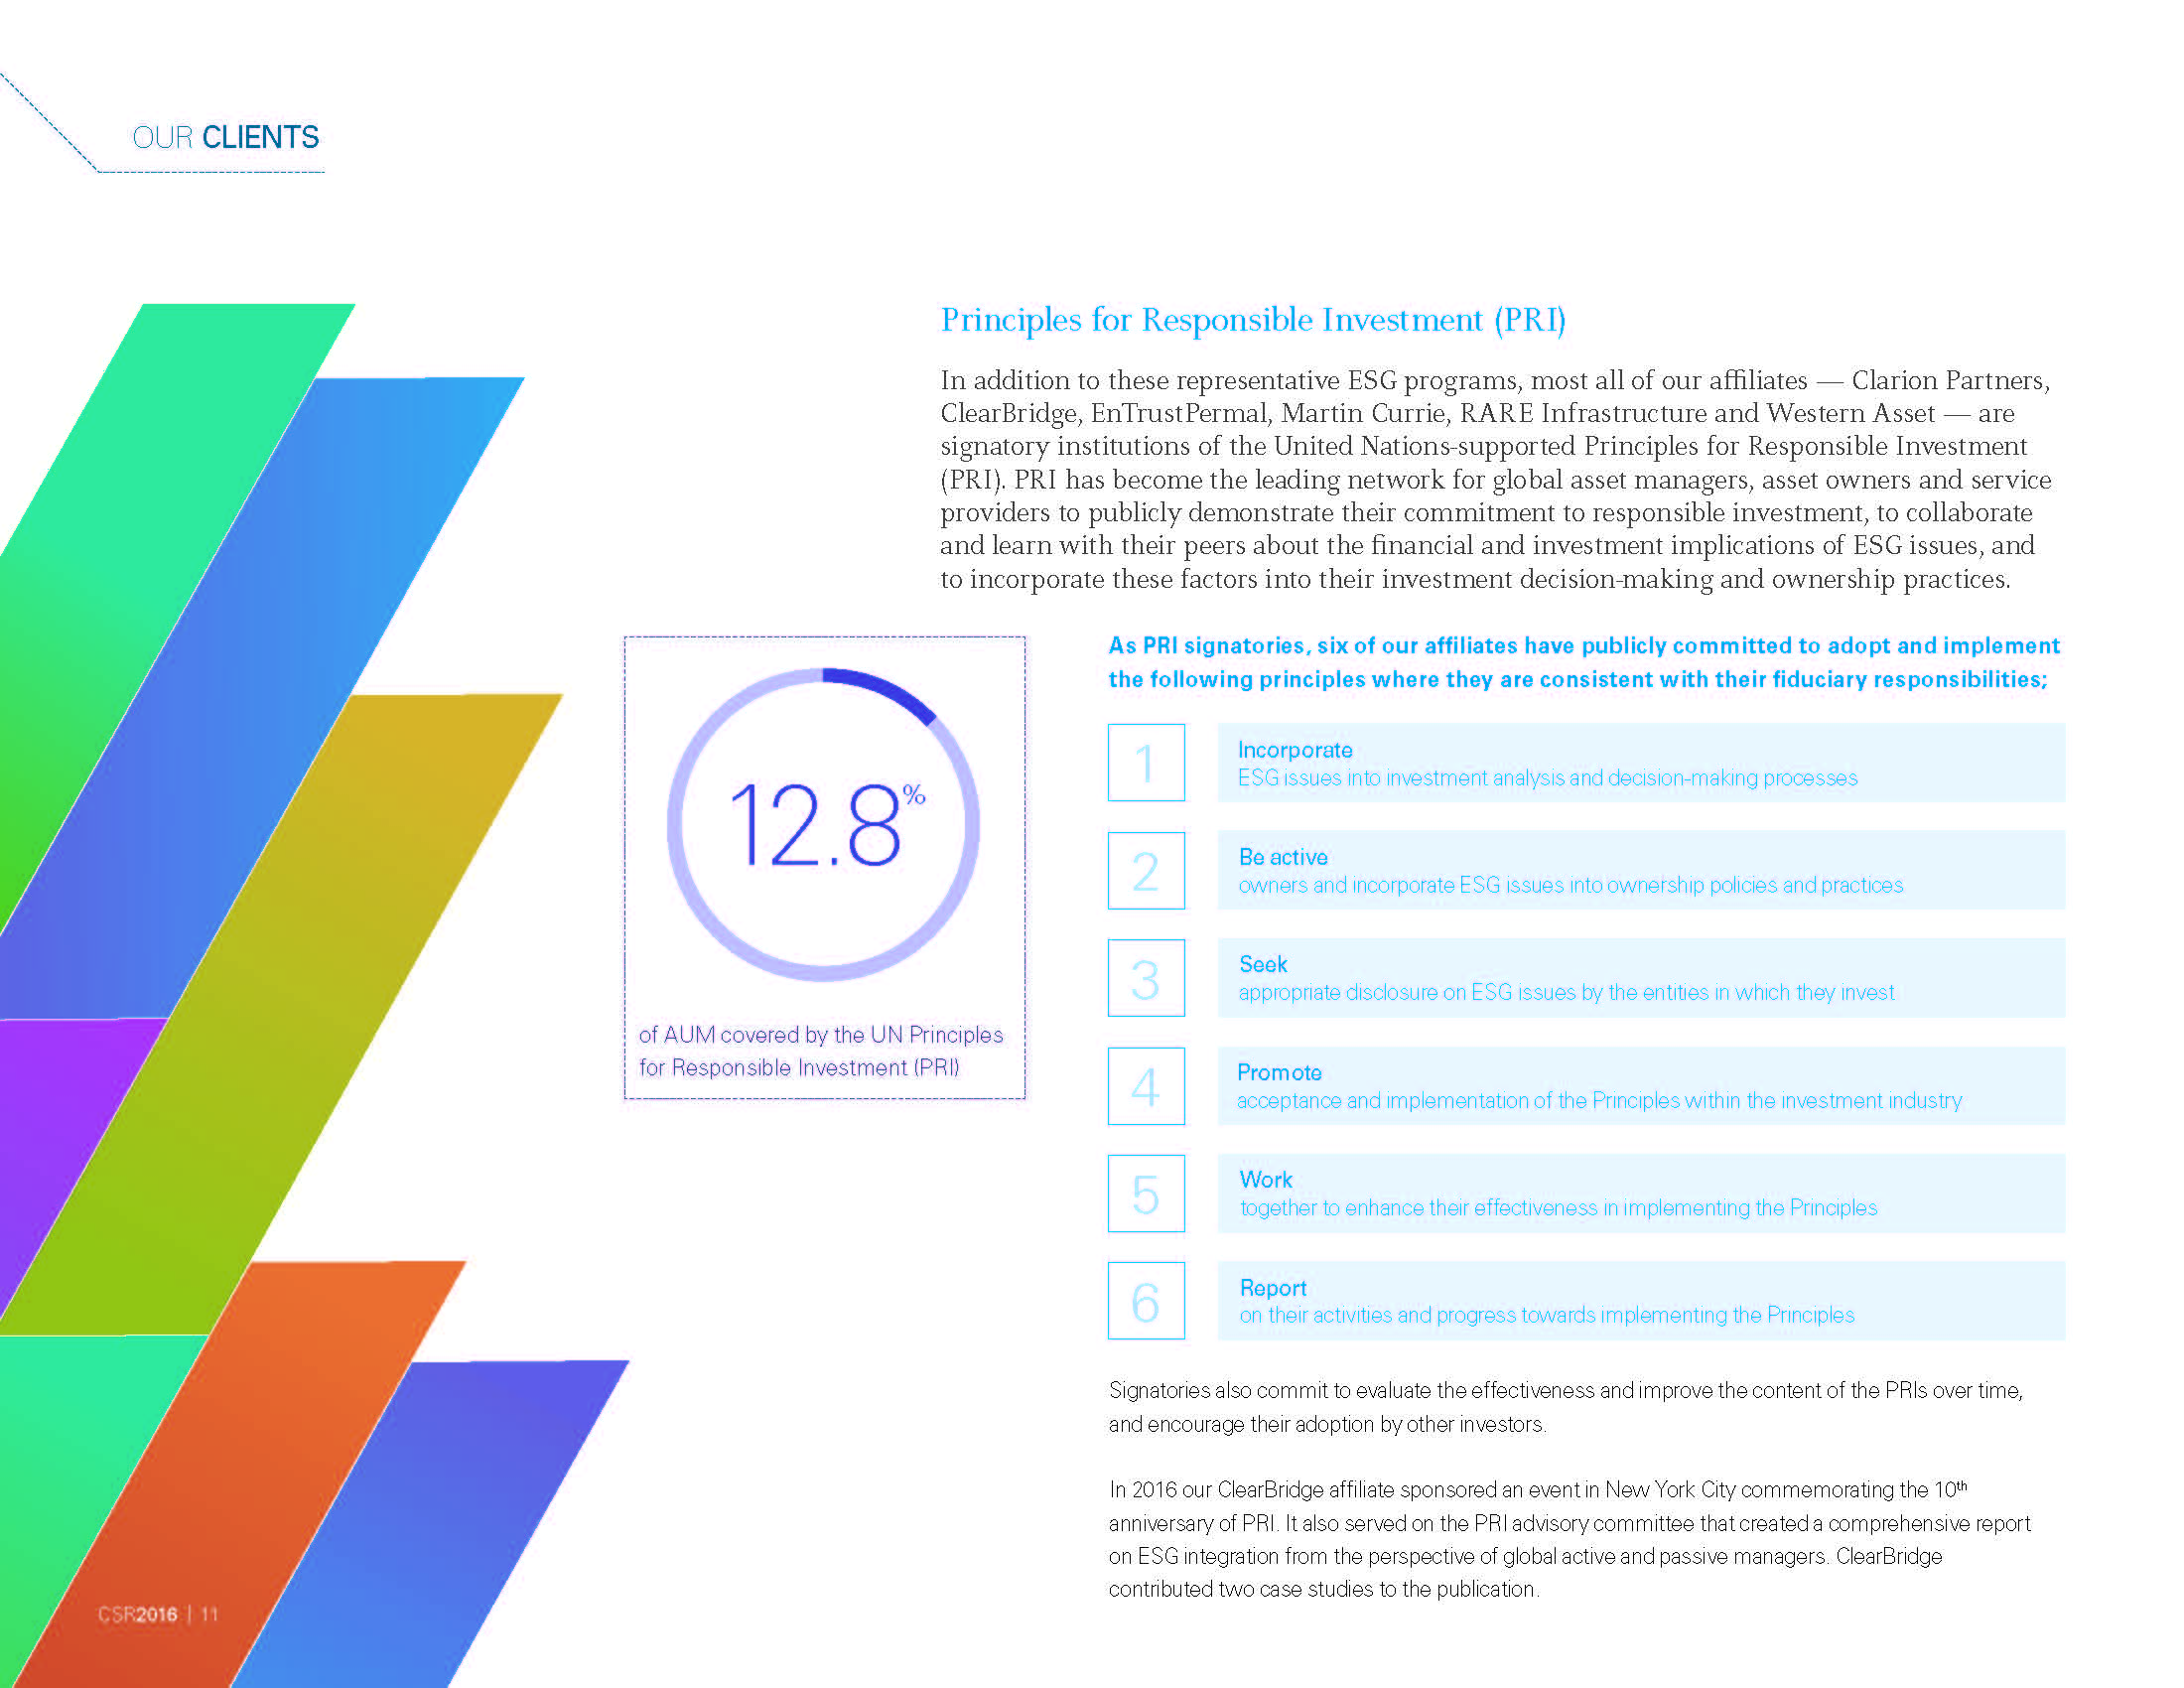 lm-csr-report_Page_11.jpg